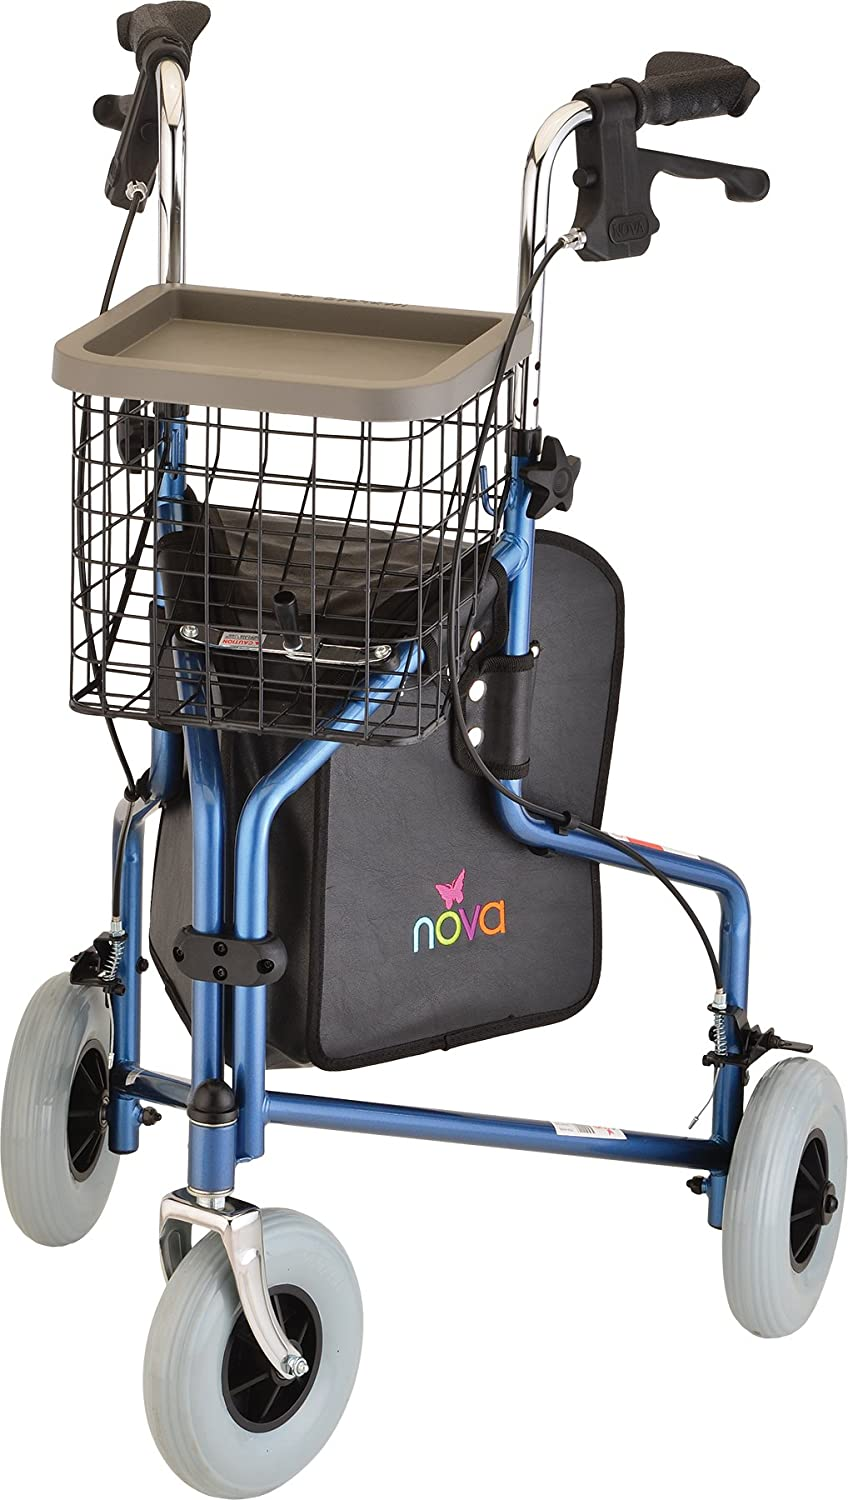 "NOVA Traveler 3 Wheel Rollator Walker, All Terrain 8"" Wheels, Includes Bag, Basket and Tray, Blue: Health & Personal Care"